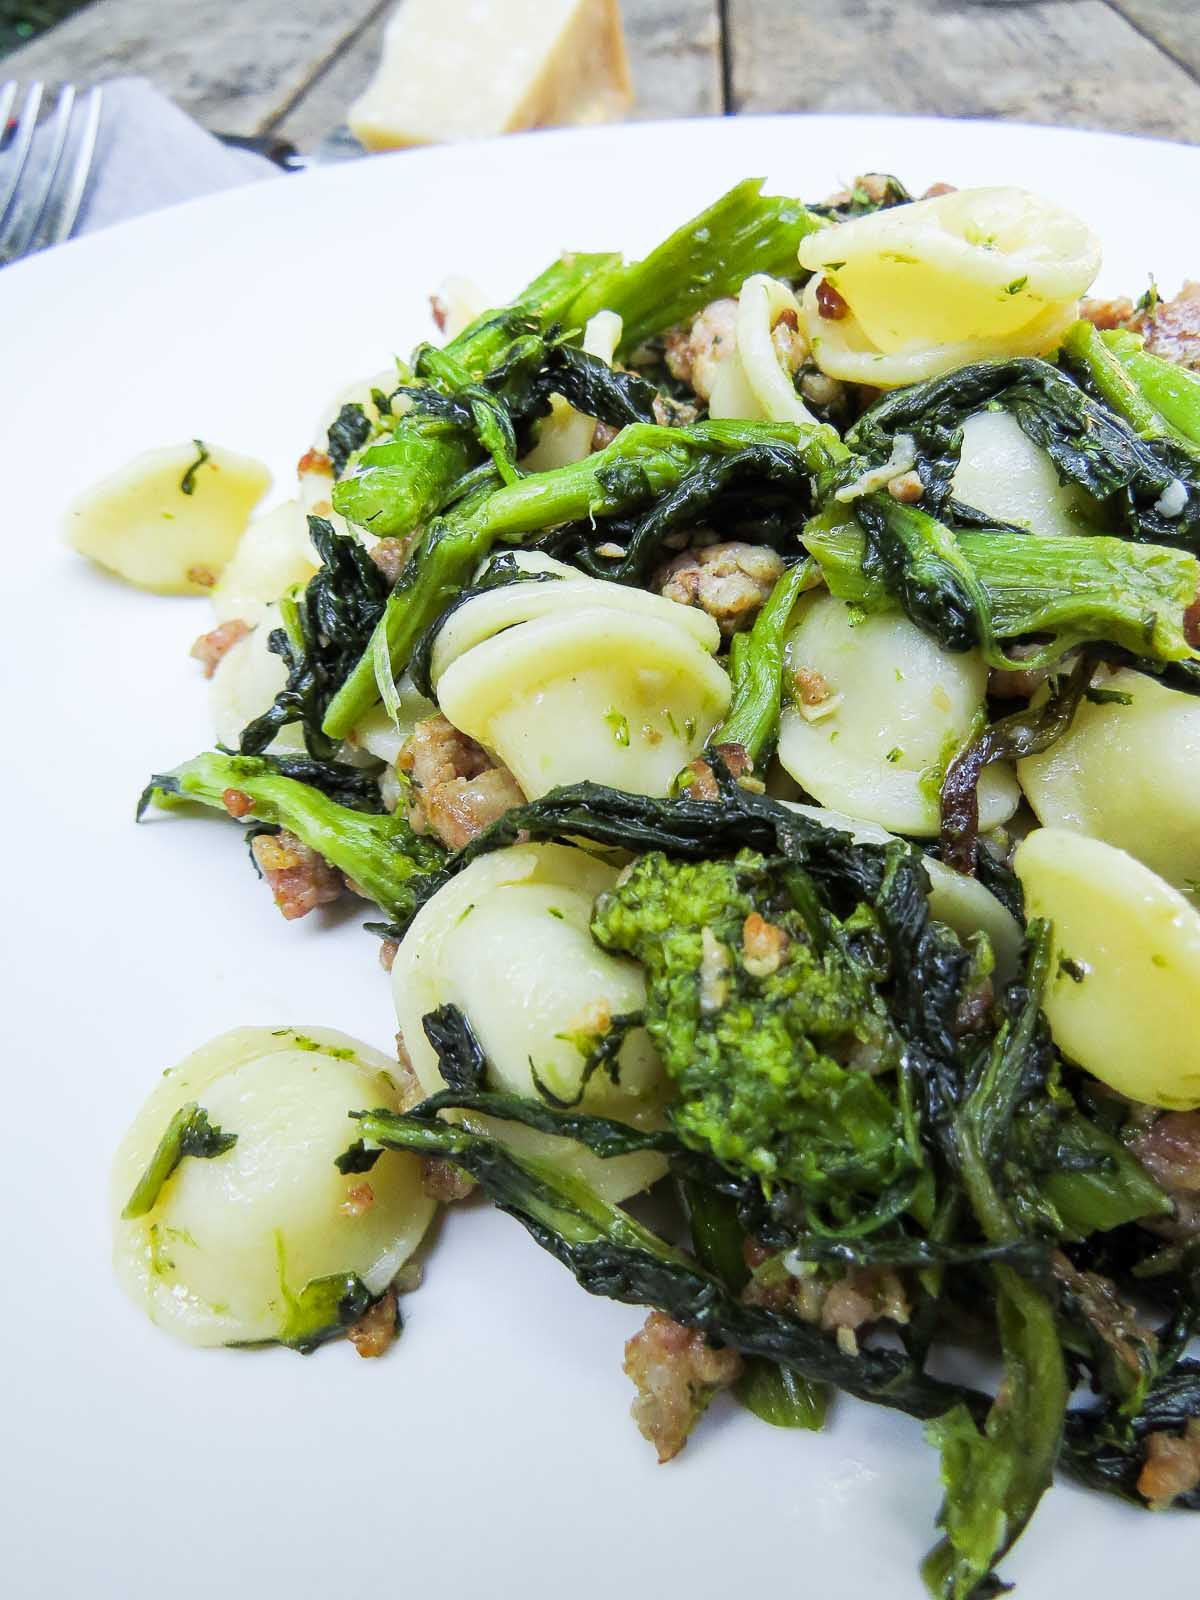 Orecchiette with Rapini & Sausage - Delicious juicy Italian sausage and the slightly bitter yummy taste of rapini come together again to make an awesome traditional pasta dish. It's great for supper tonight and lunch tomorrow; cold or hot!